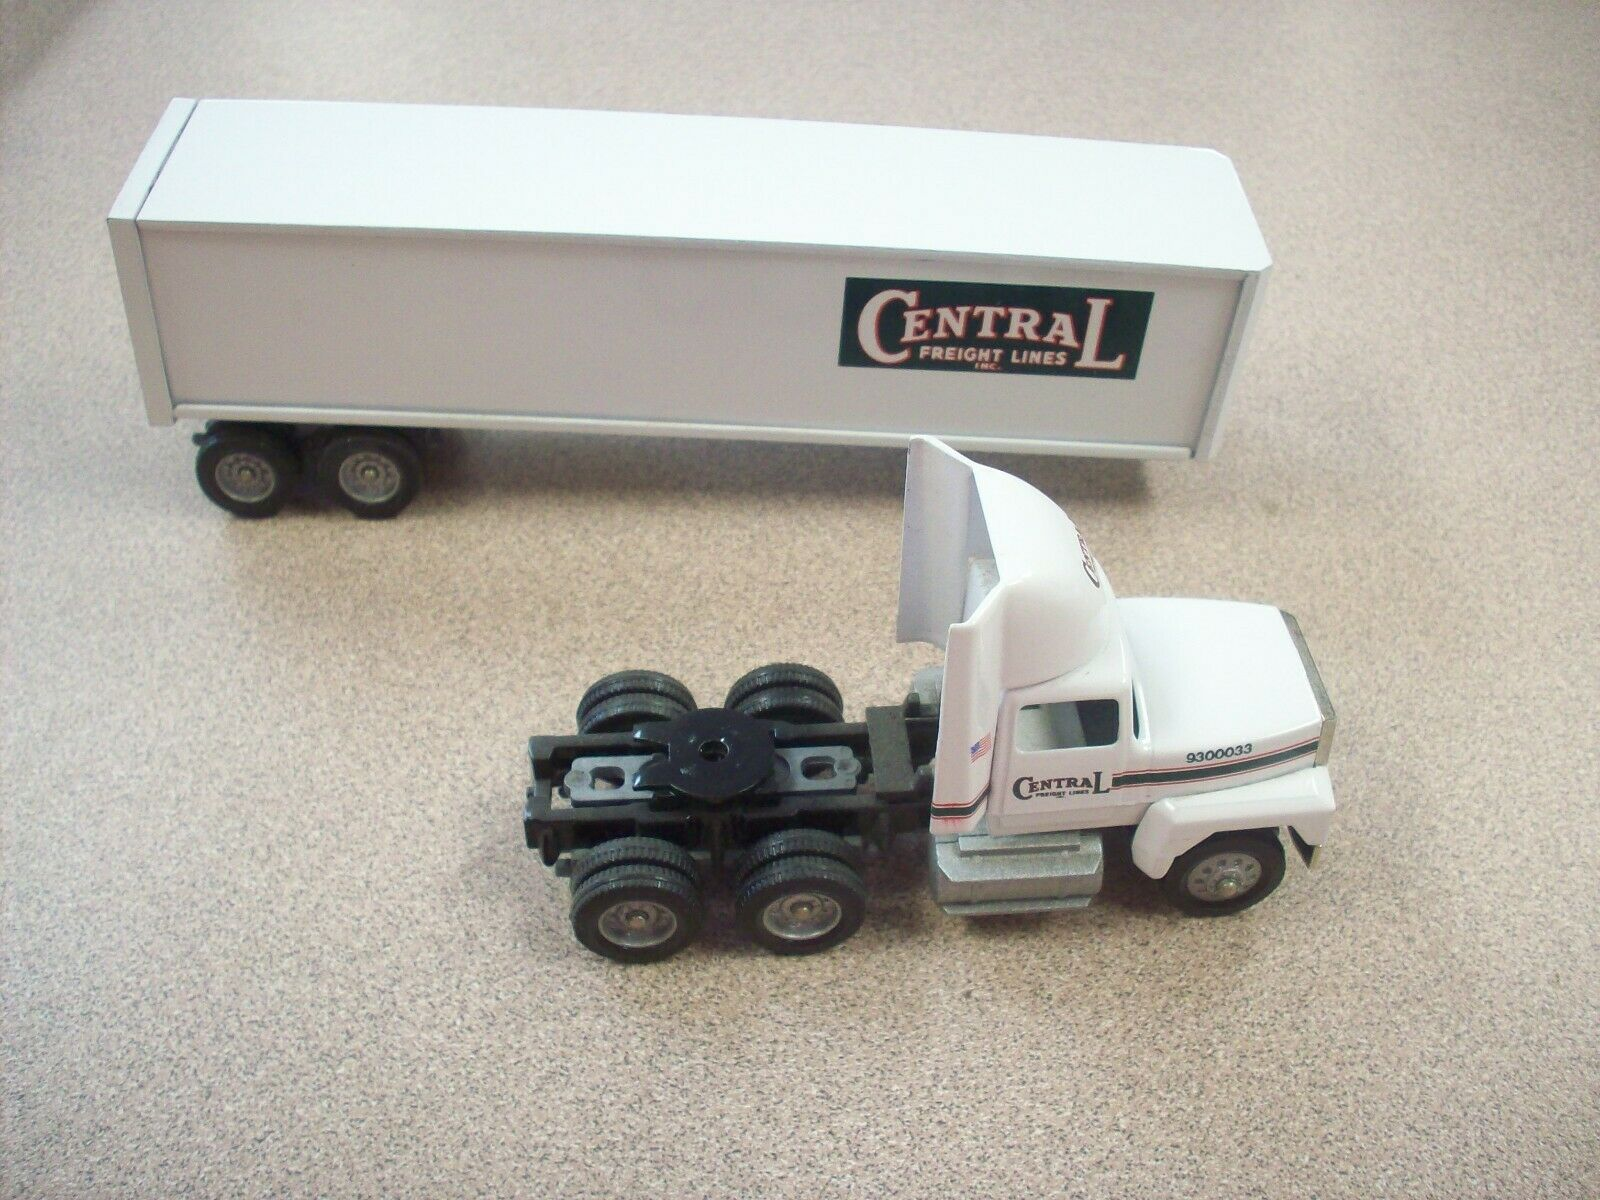 Winross Central Central Central Freight Lines Inc Ford Tractor Trailer 1 64 Ford Tractor VGC 3a902c